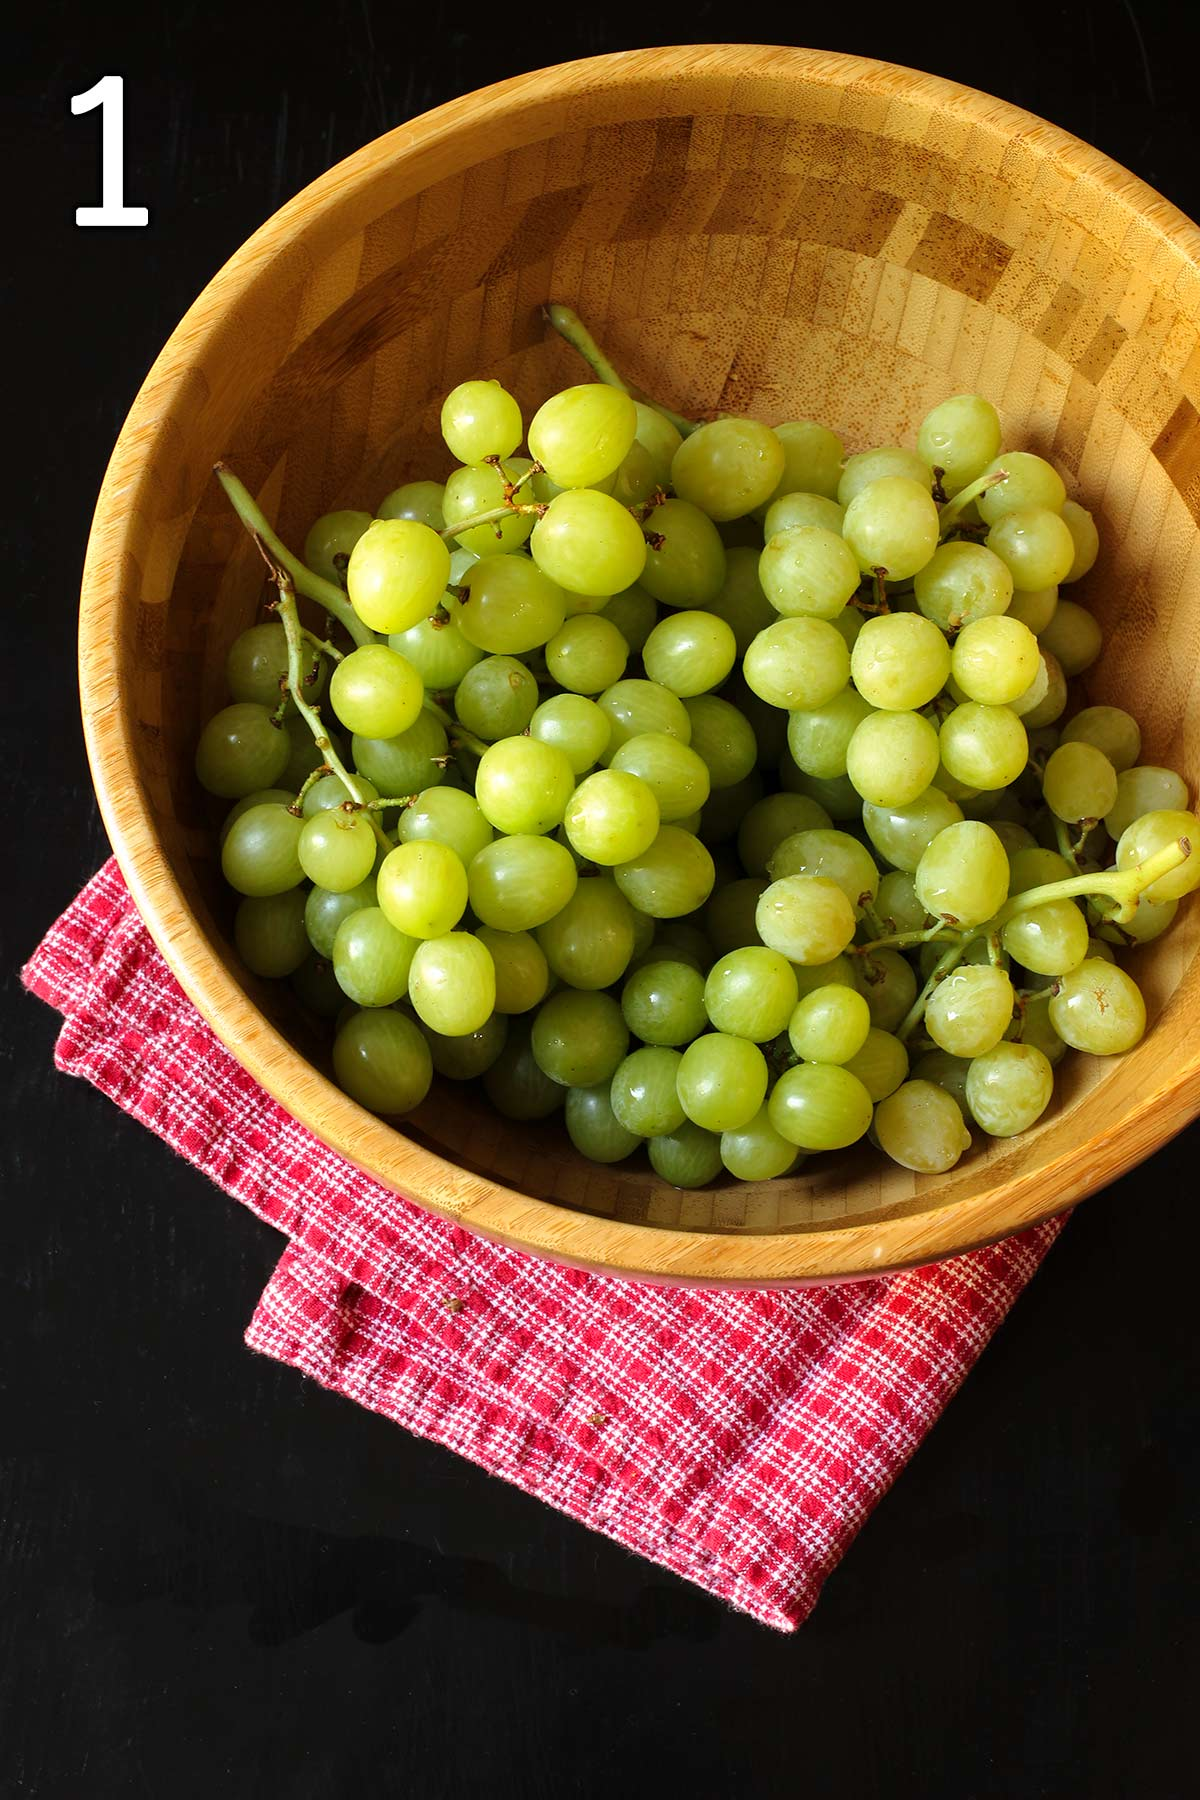 washed green grapes in a large wooden bowl on a red cloth.